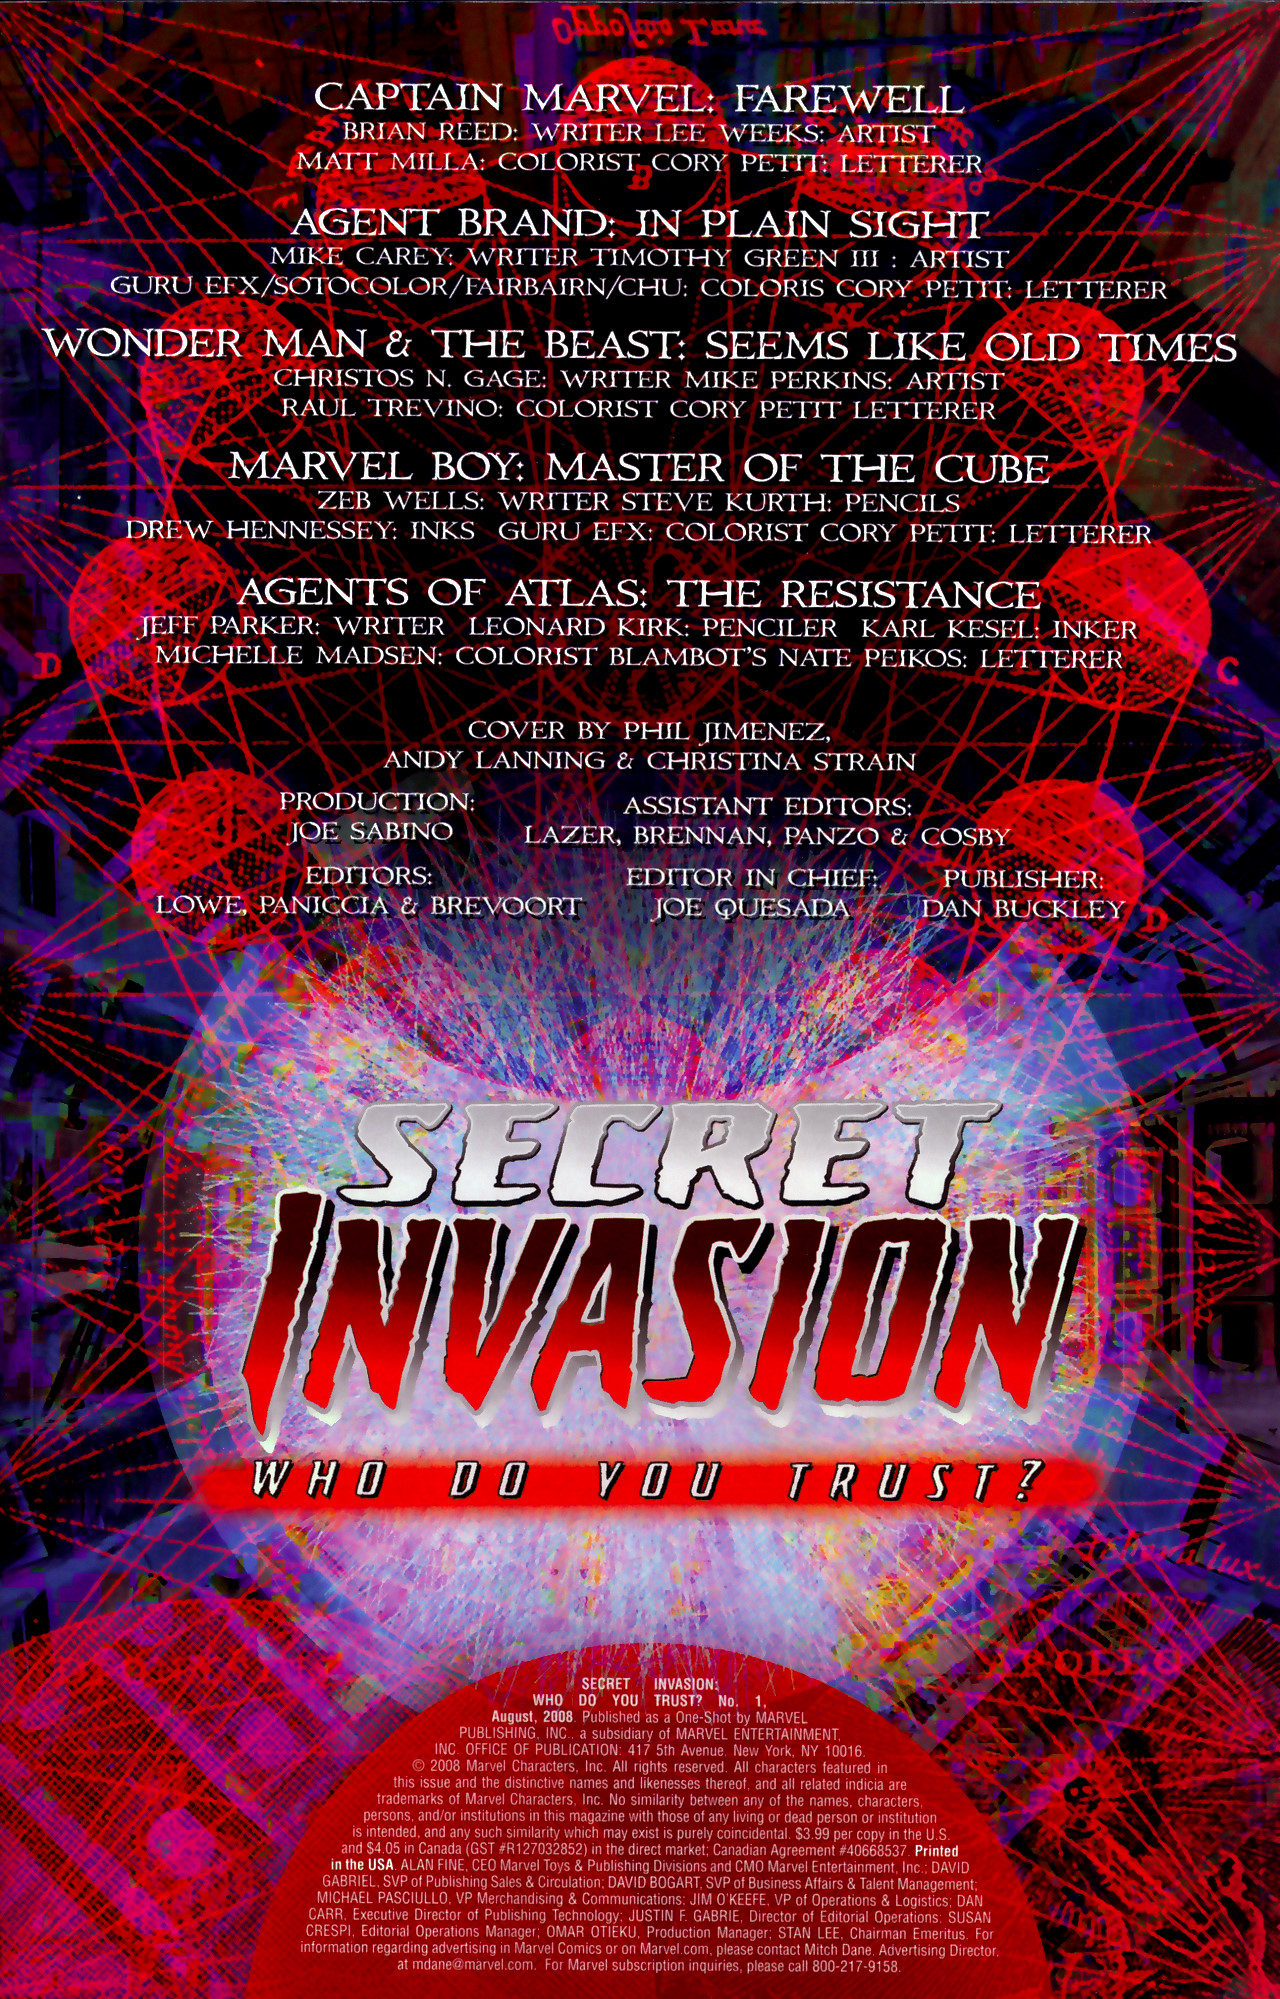 Read online Secret Invasion: Who Do You Trust? comic -  Issue # Full - 4